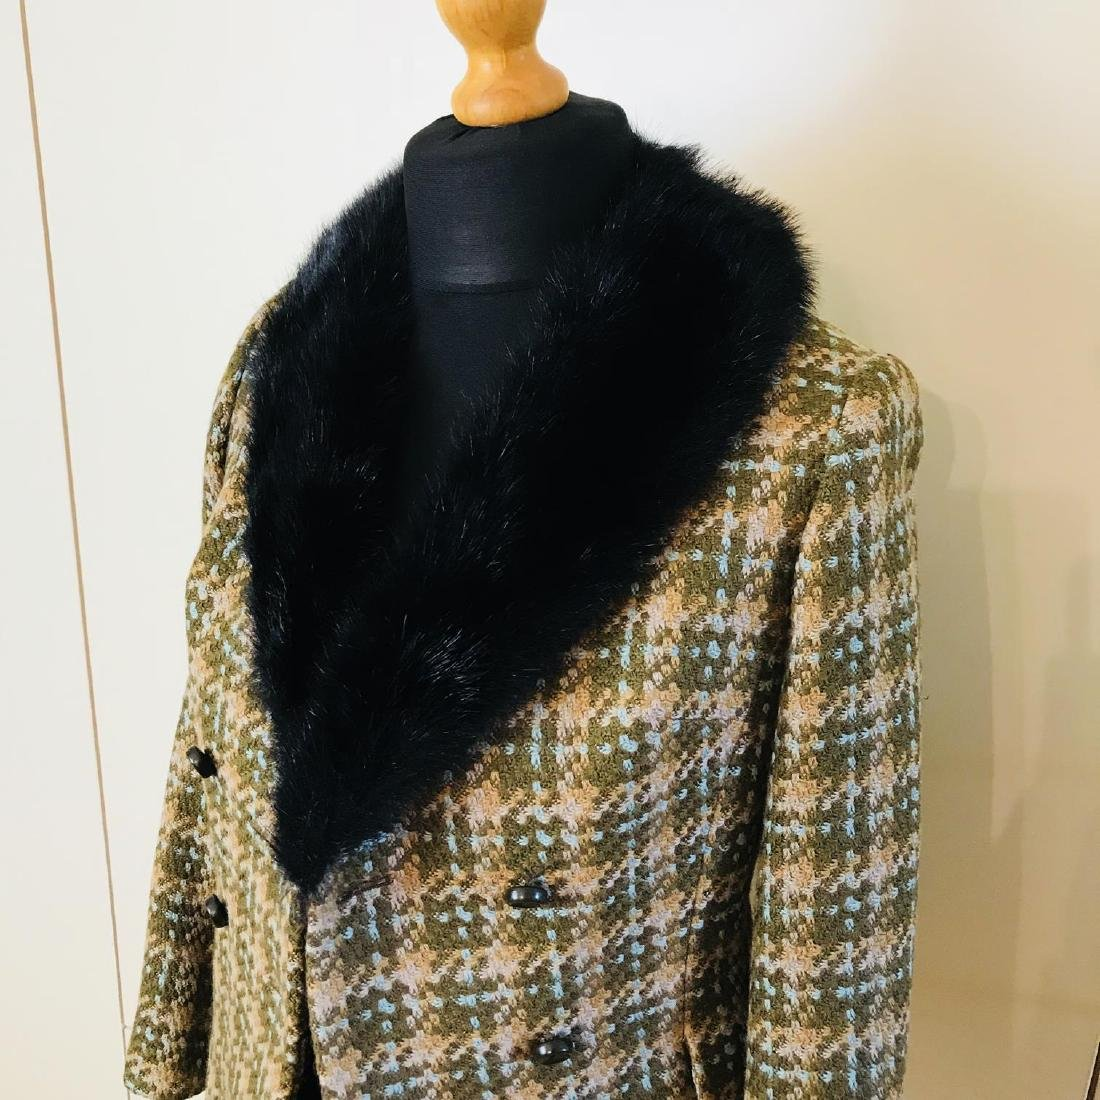 Vintage Women's Designer Jacket Blazer with Real Fur - 3